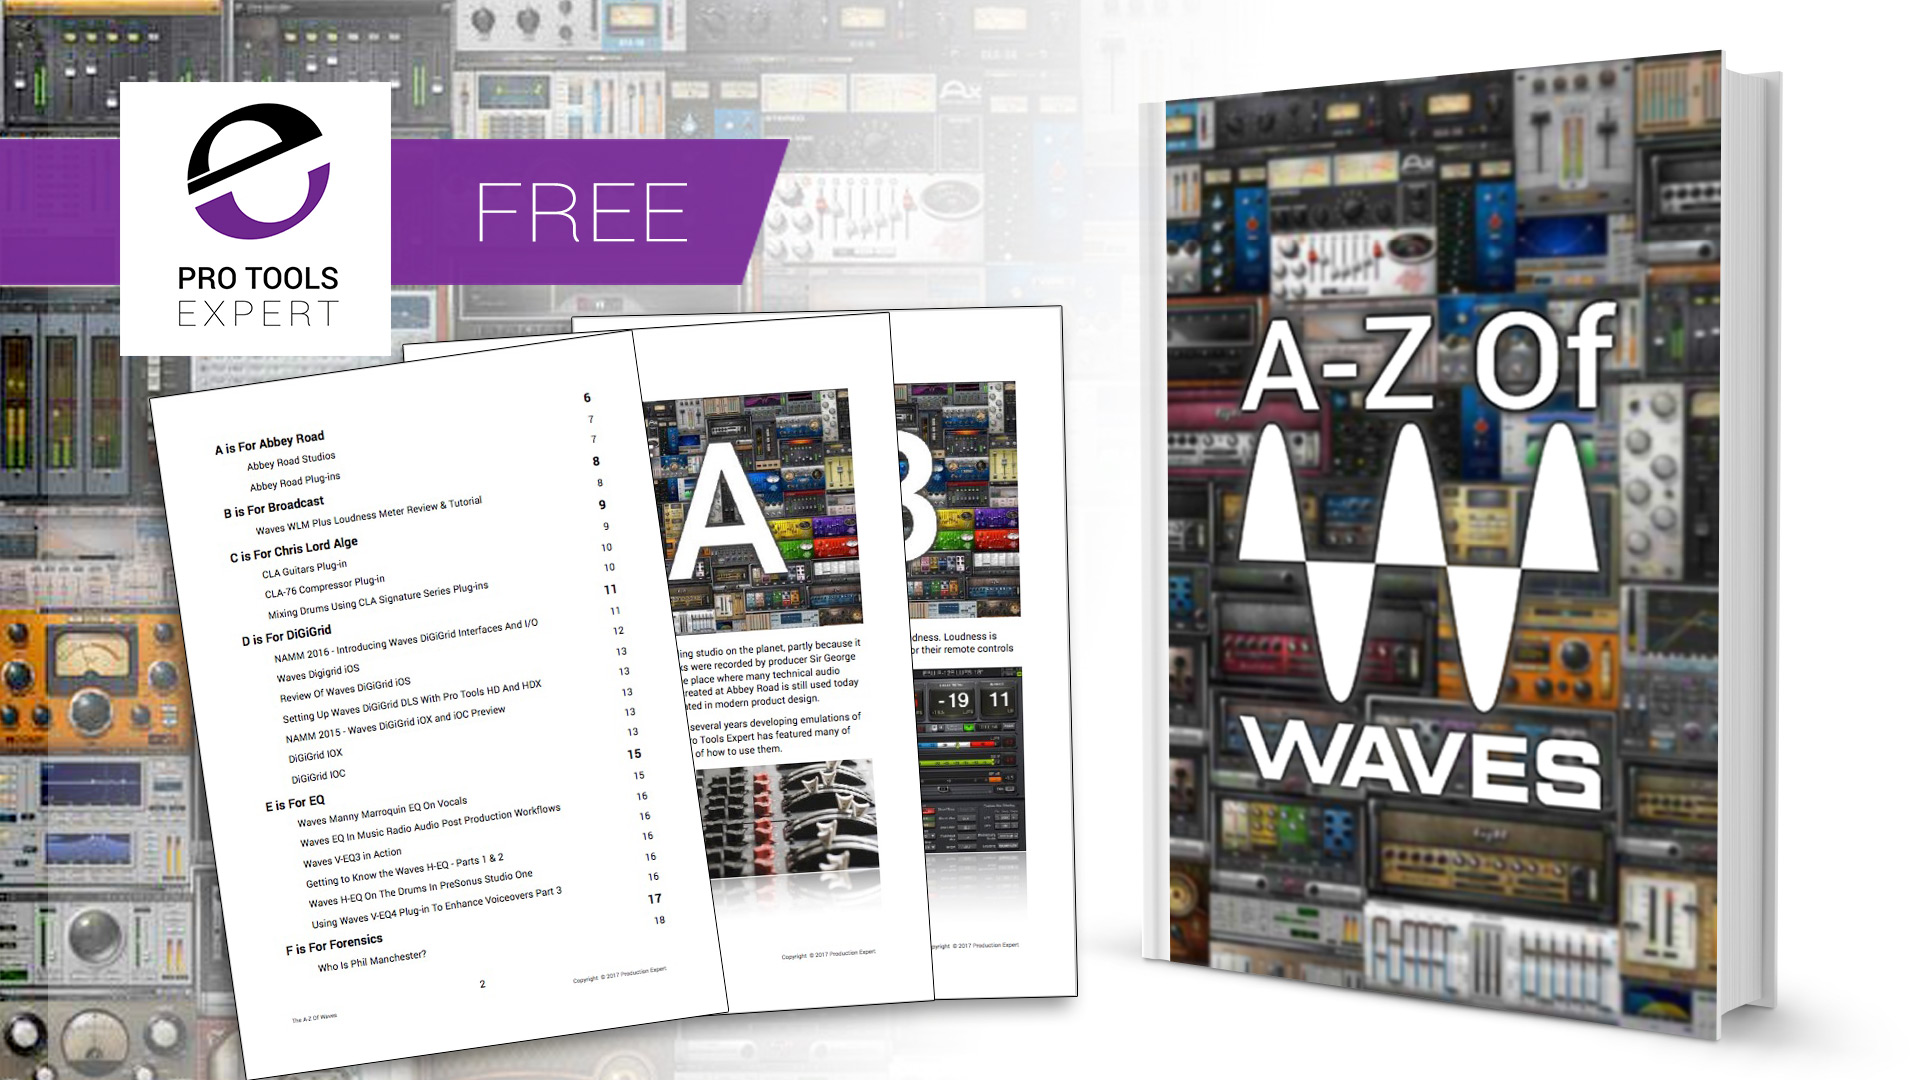 The A-Z Of Waves - Interactive eBook Download Now For Free